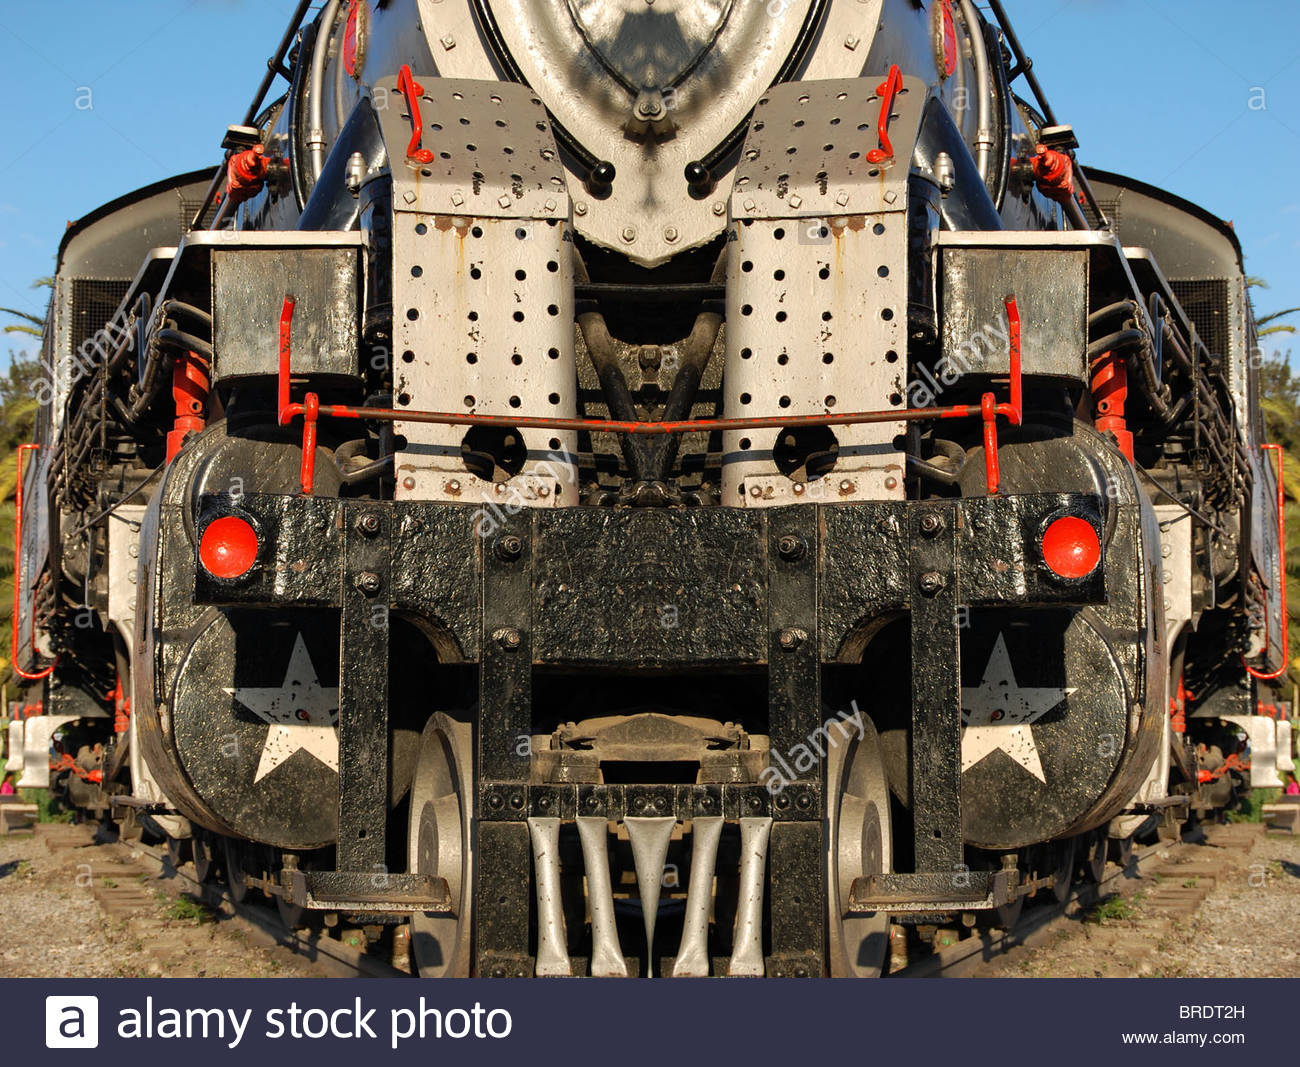 composite image train trains locomotive looking directly at front cattle guard grate showing massive steel construction Stock Photo